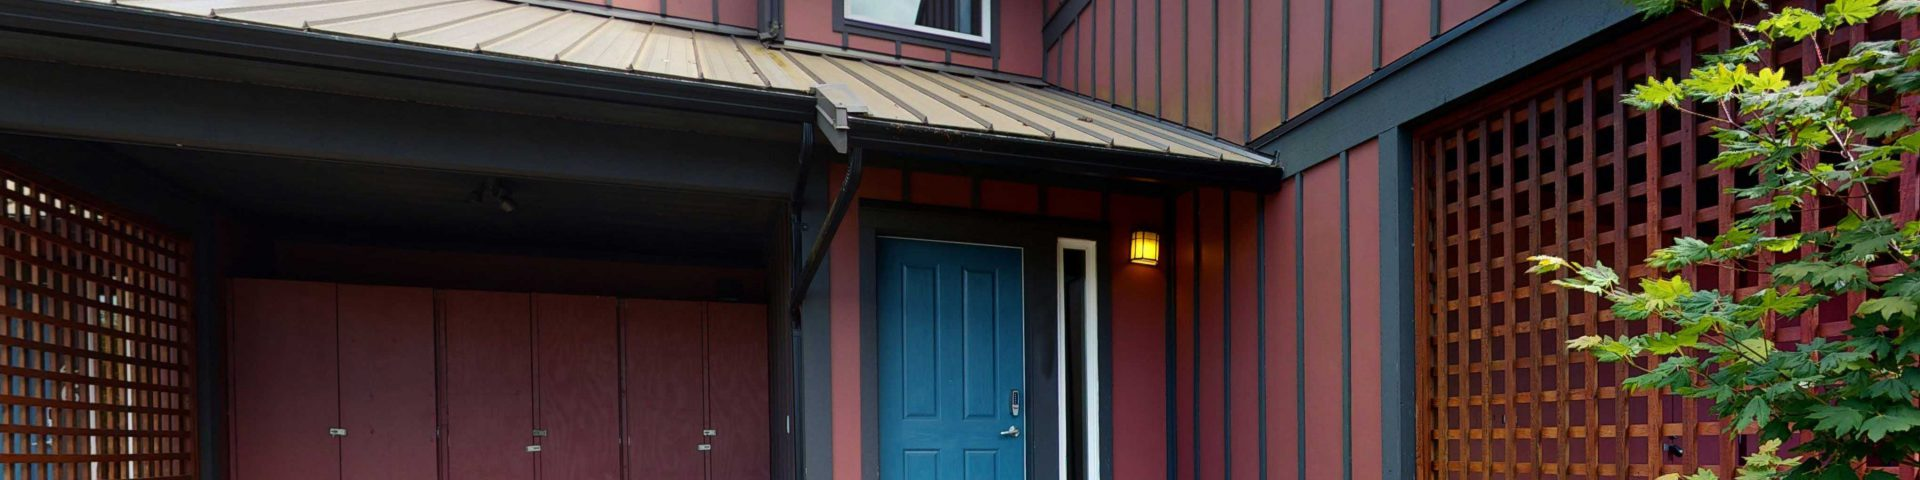 Fully-equipped 2 Bedroom Townhome in Sooke, BC